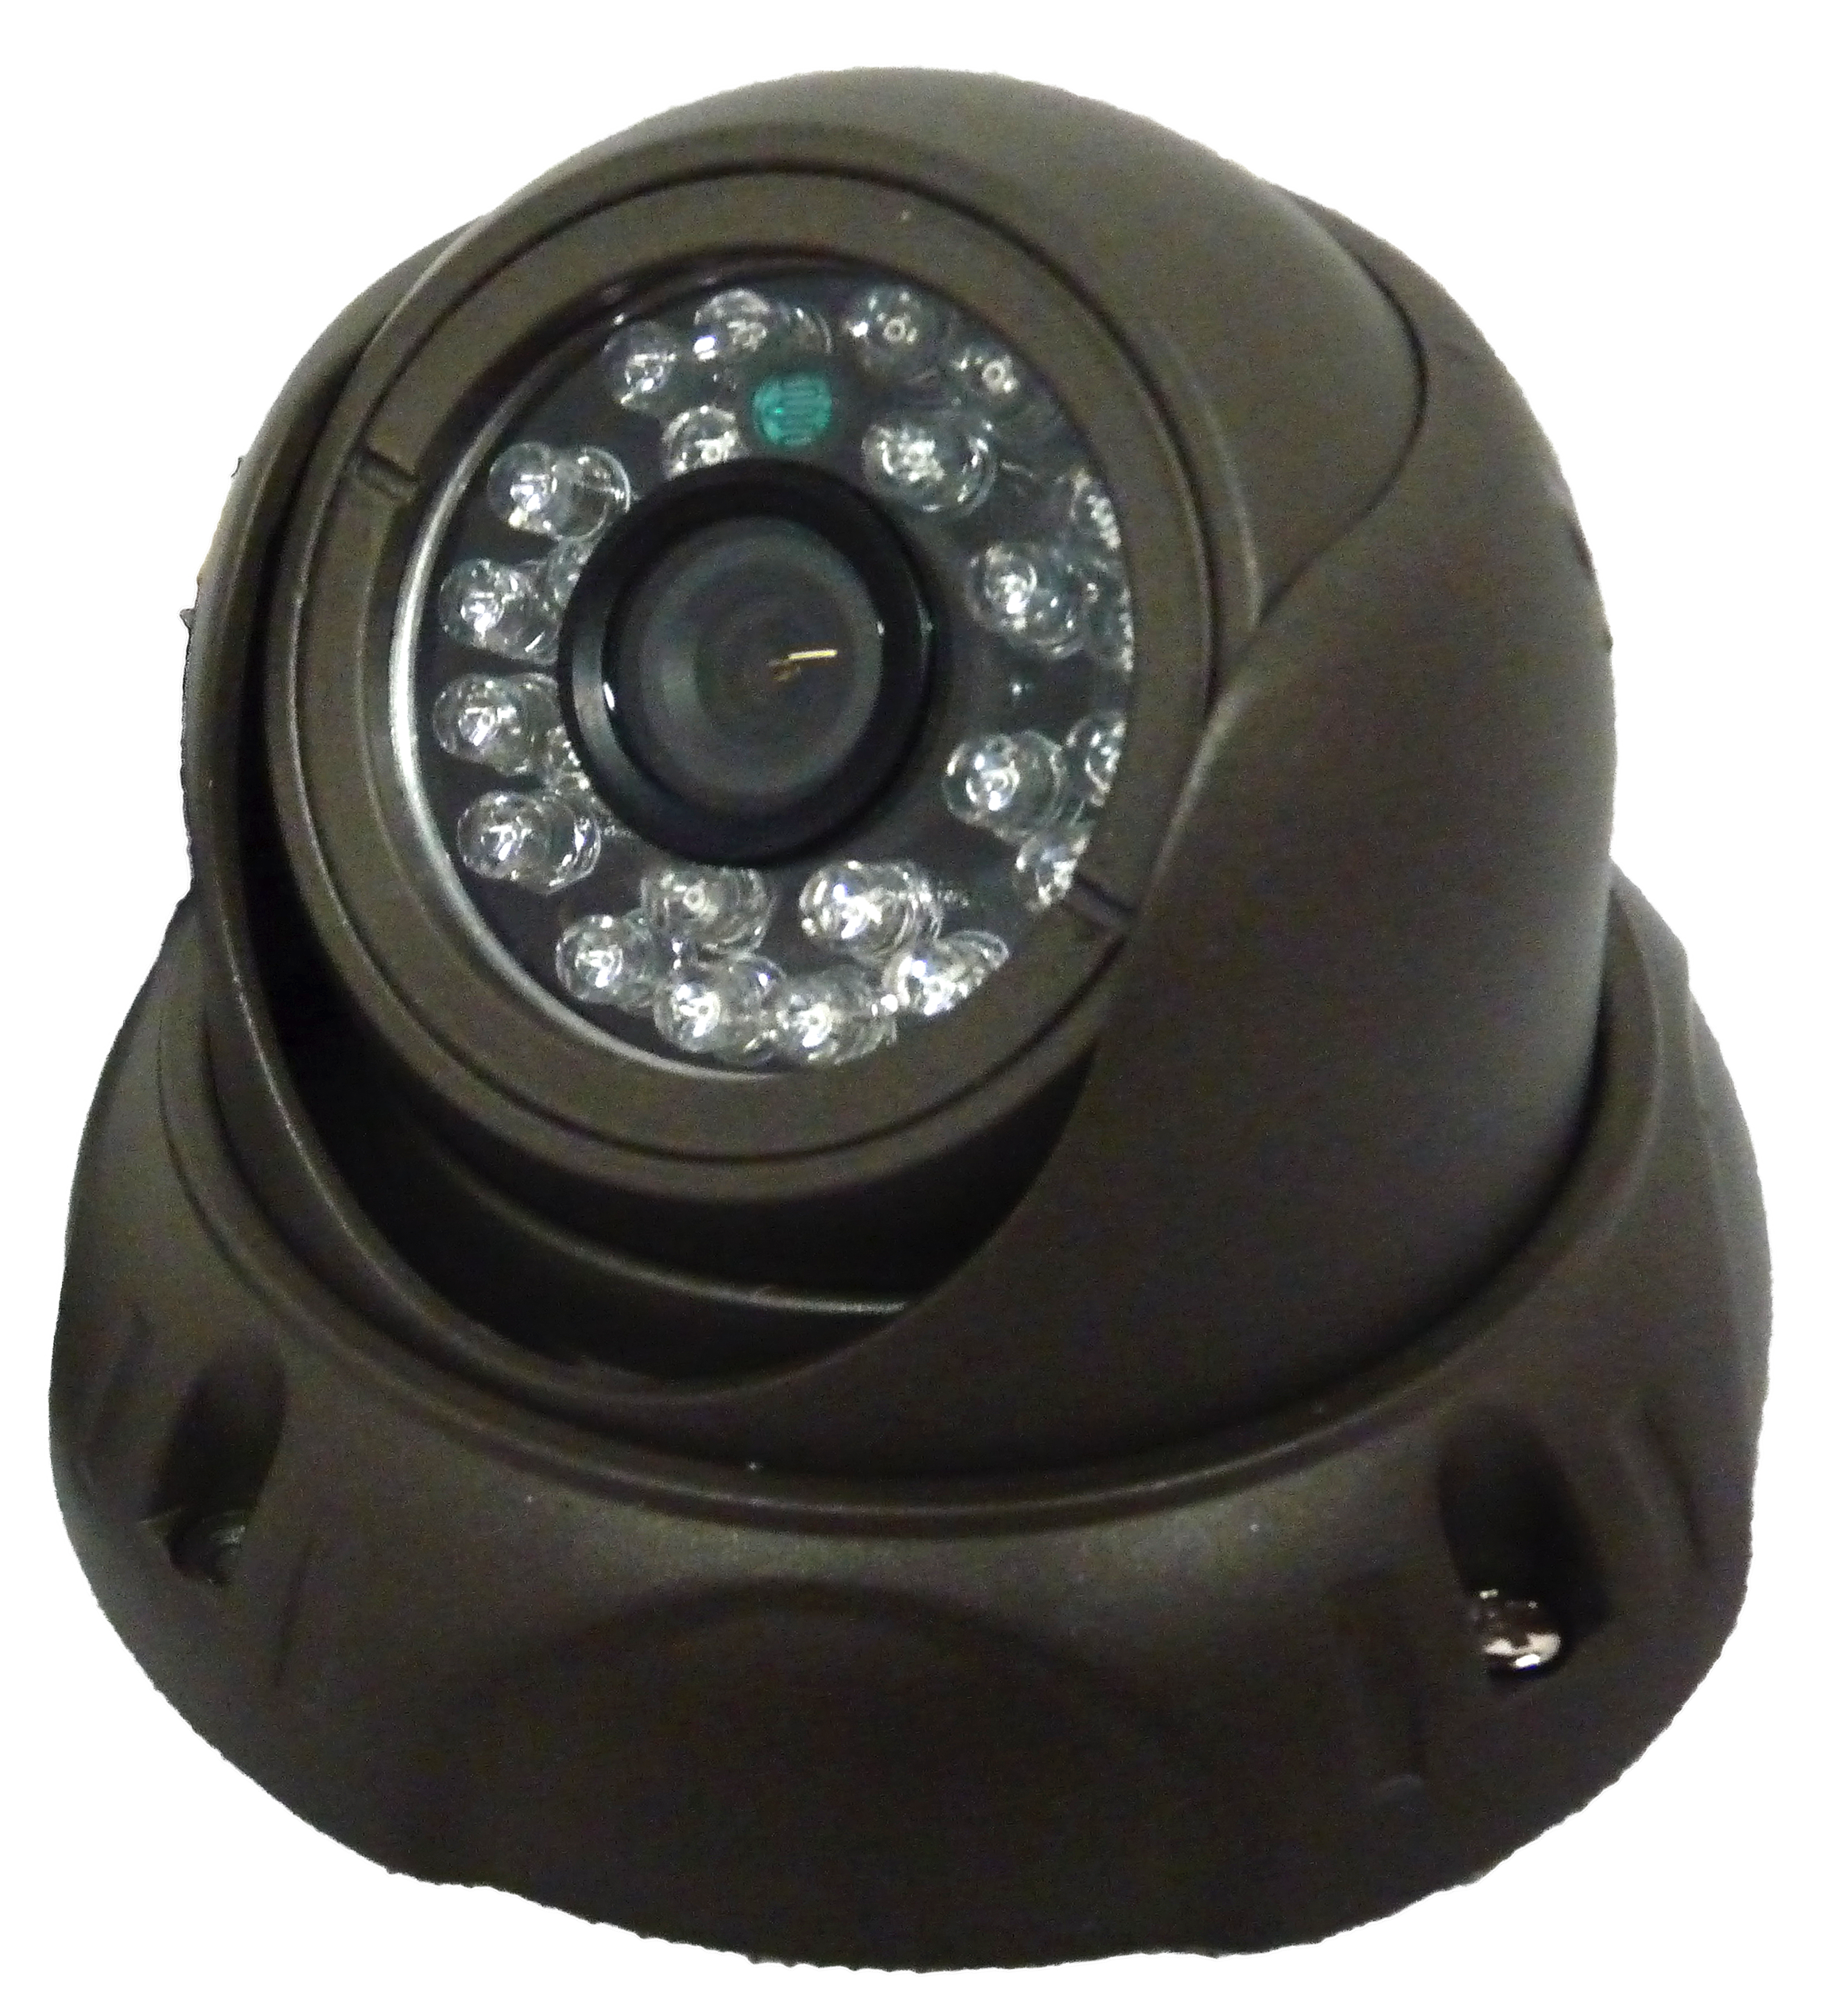 DBS 785G - 700TVL CCTV Dome Security Camera - 1/3'' Sony Super HAD CCD II